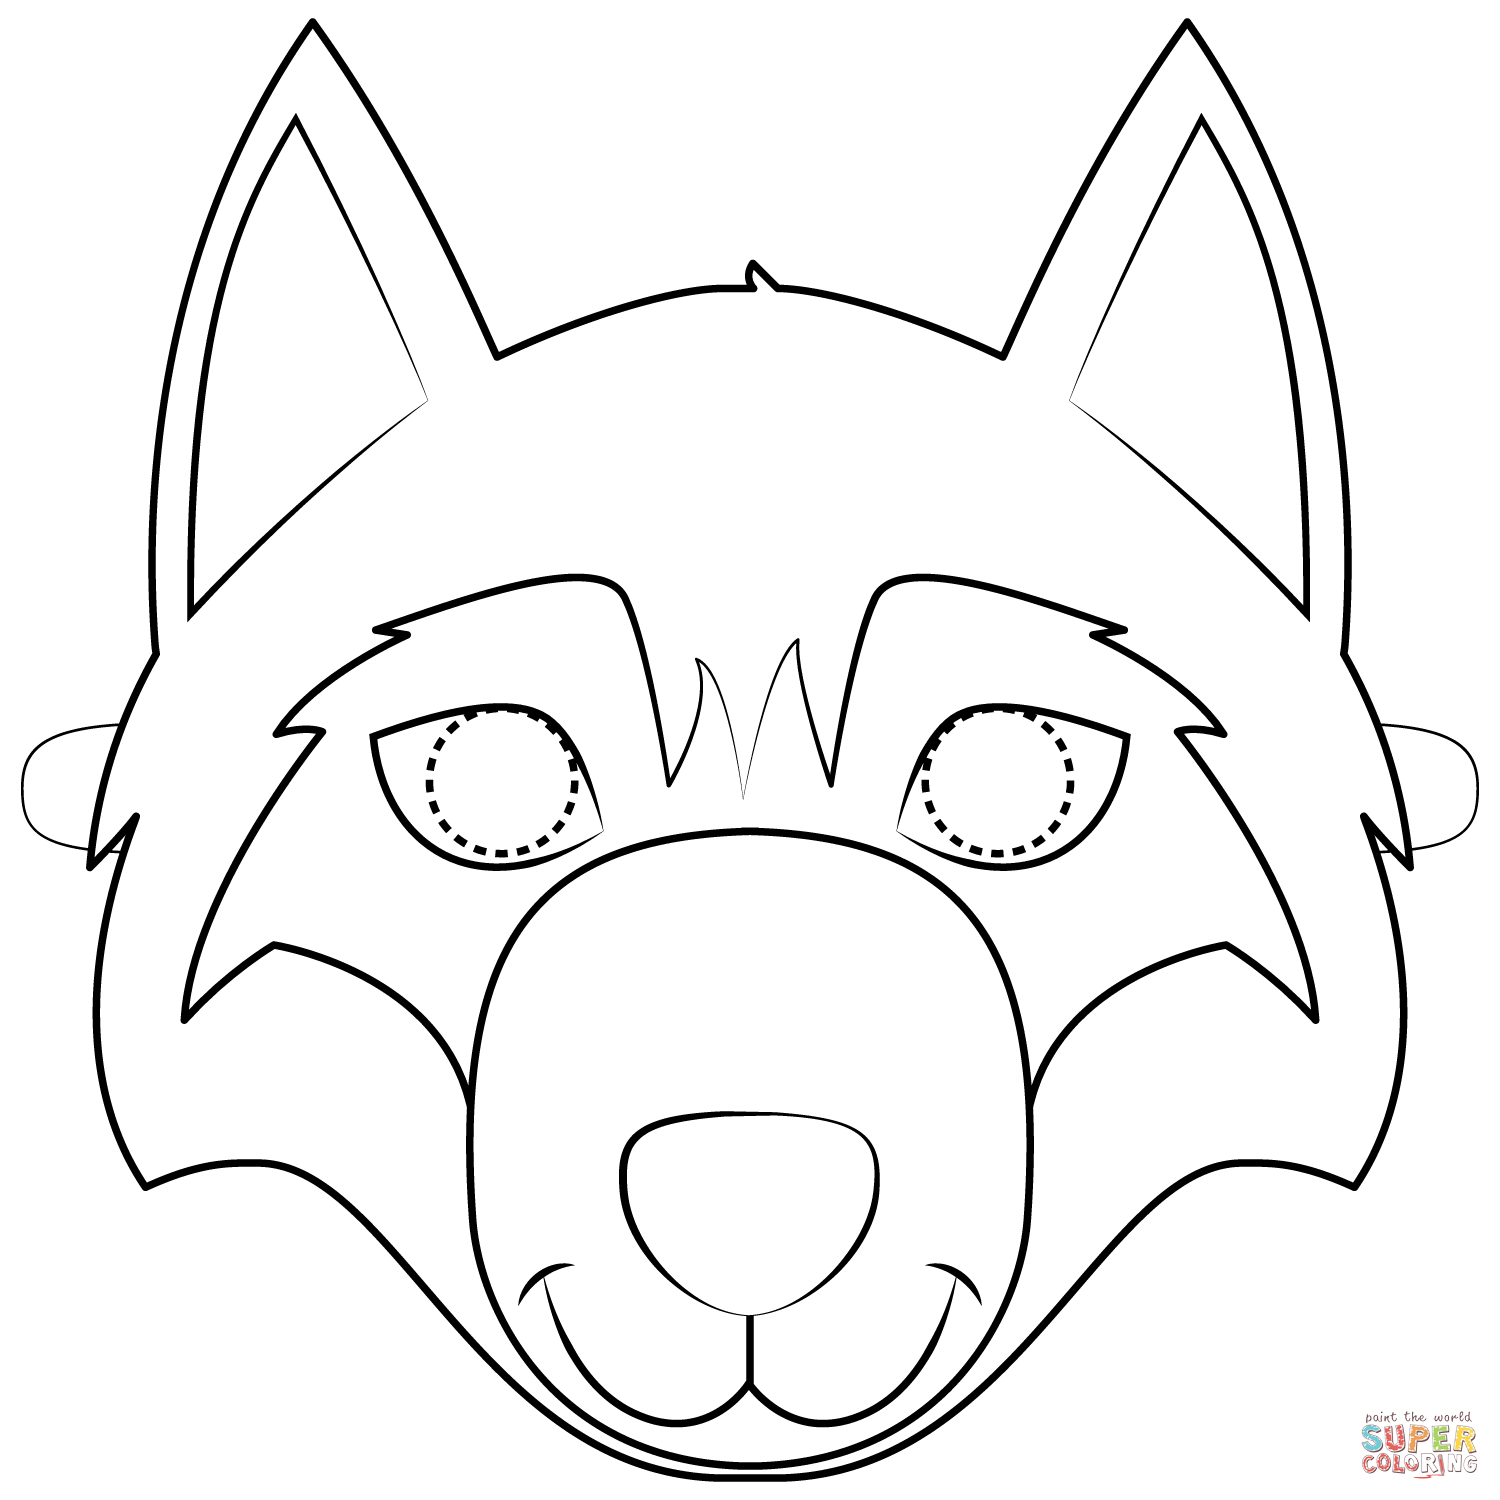 Wolf Mask Coloring Page   Free Printable Coloring Pages - Free Printable Wolf Mask